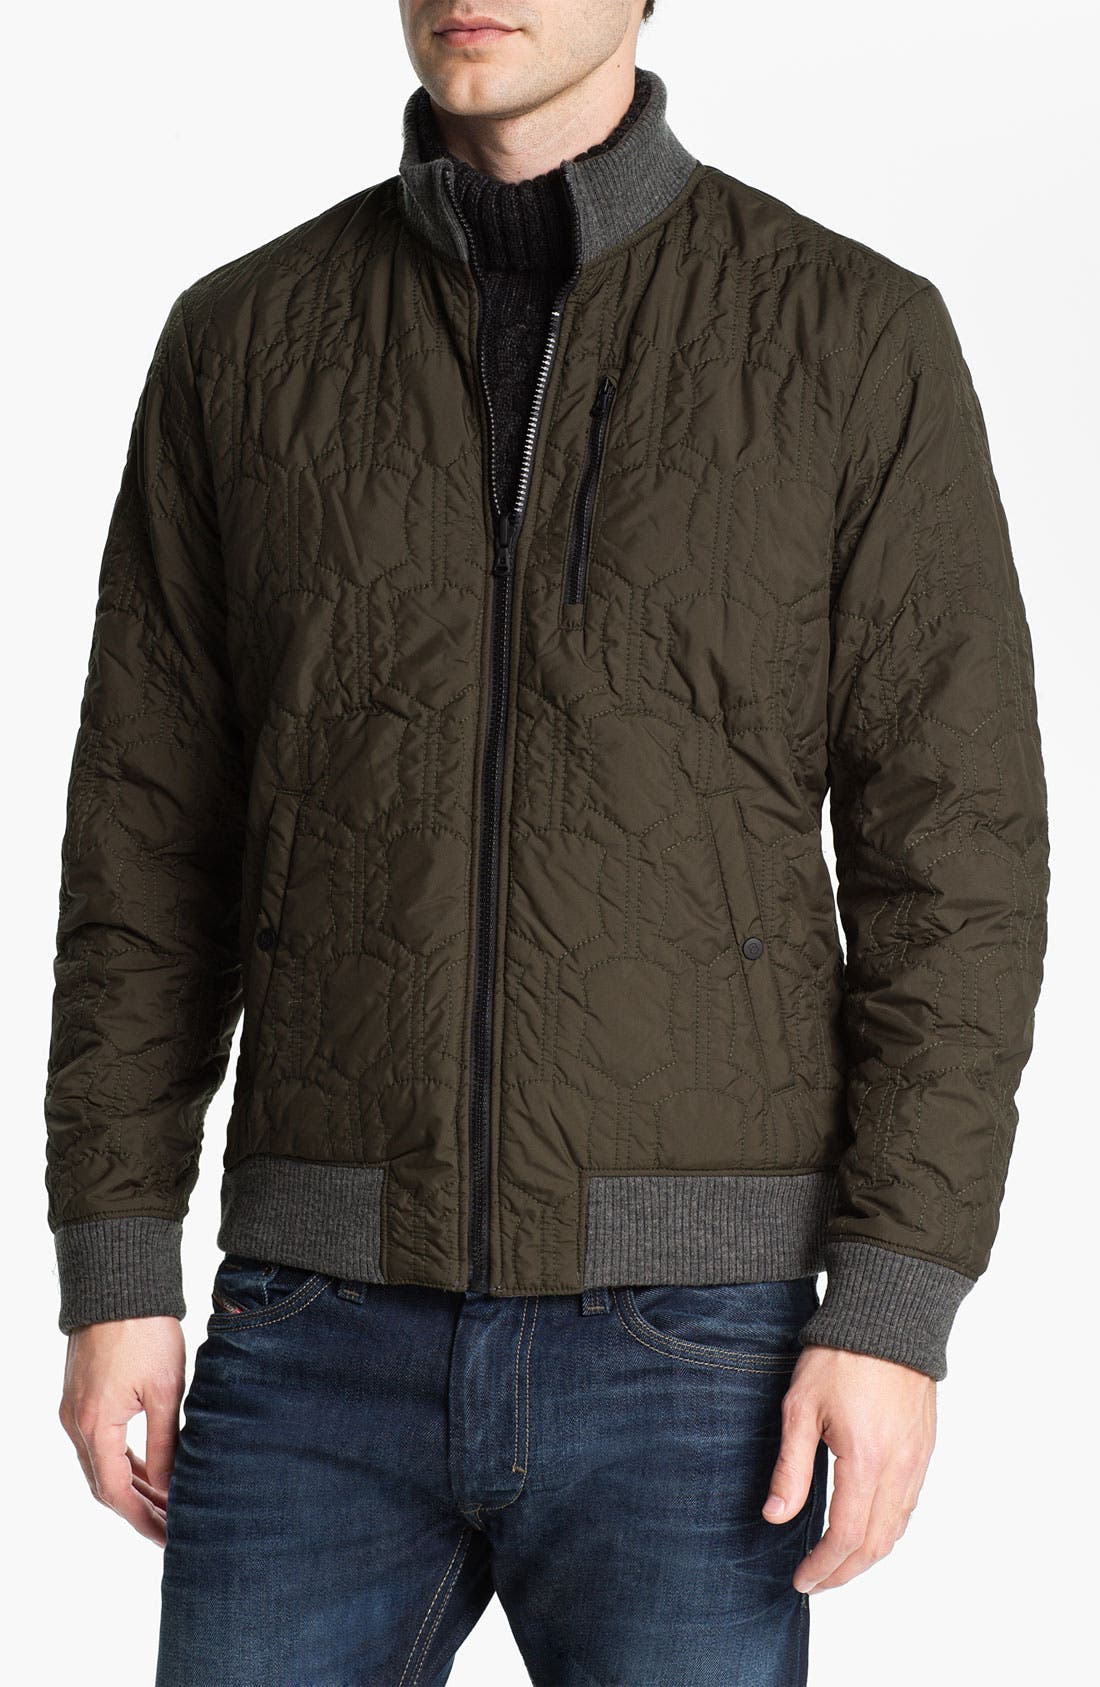 Main Image - Victorinox Swiss Army® Insulated Reversible Liner Jacket (Online Exclusive)